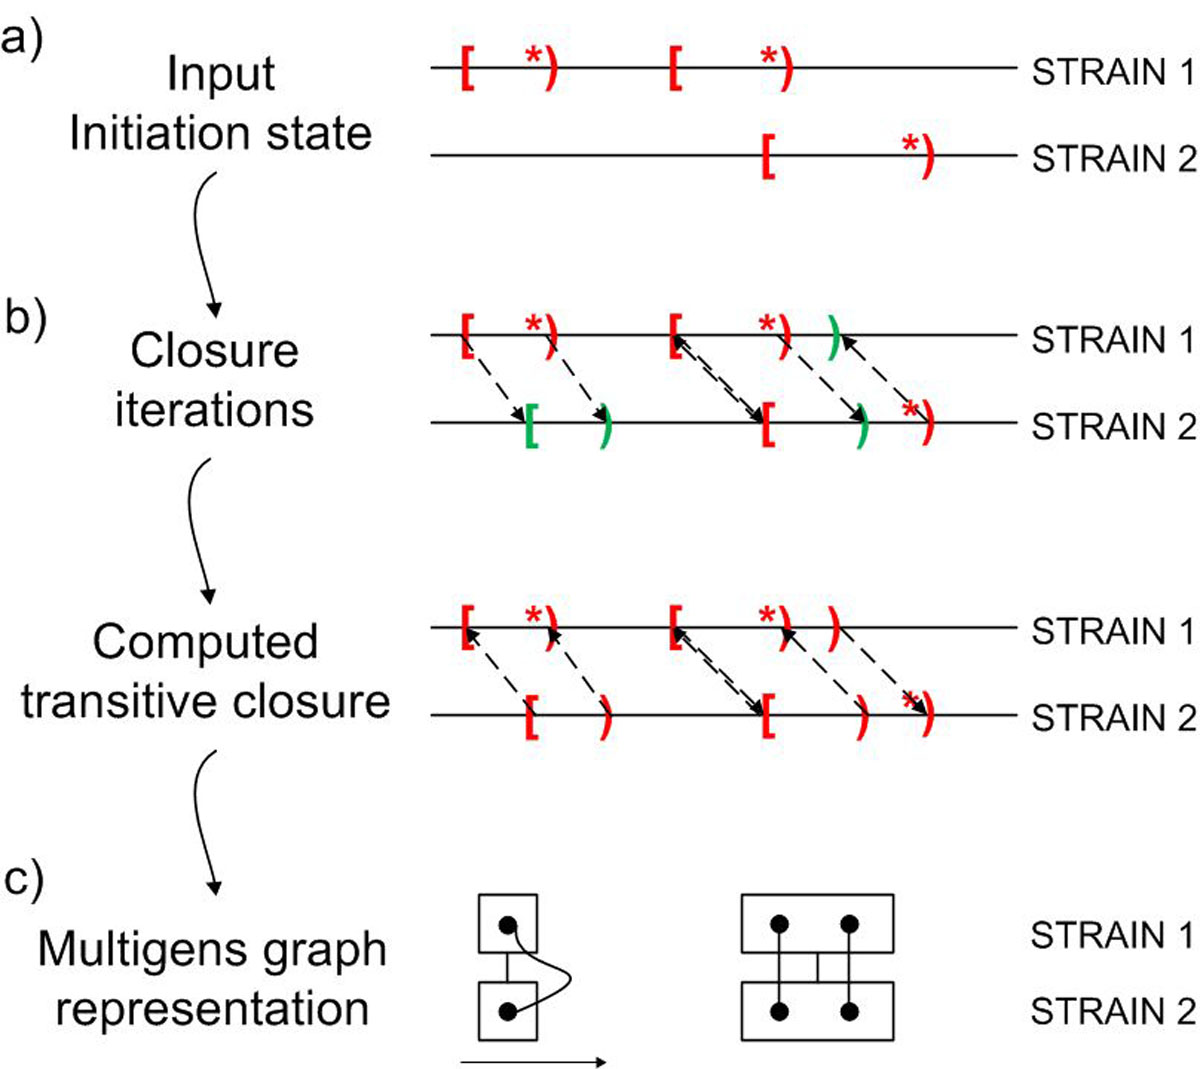 https://static-content.springer.com/image/art%3A10.1186%2F1471-2164-12-S2-S6/MediaObjects/12864_2011_Article_3480_Fig1_HTML.jpg